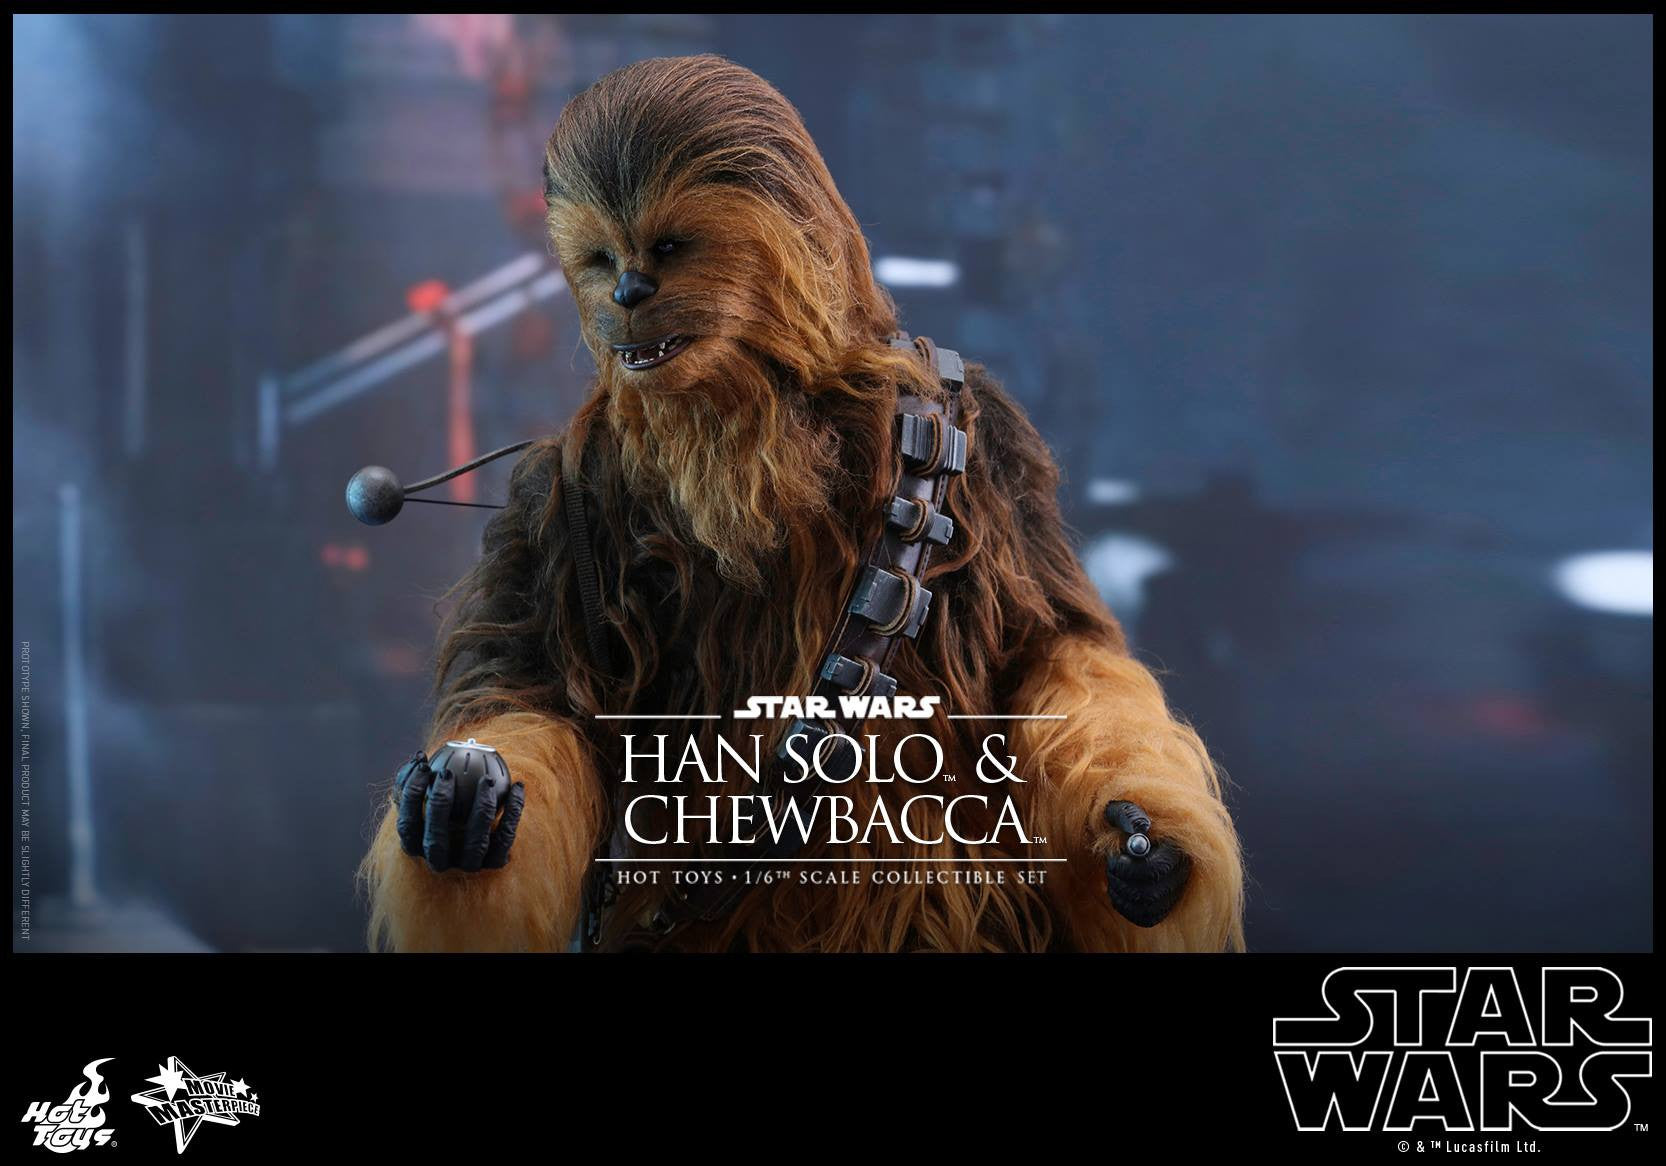 Hot Toys - MMS376 - Star Wars: The Force Awakens - Han Solo & Chewbacca Set - Marvelous Toys - 7